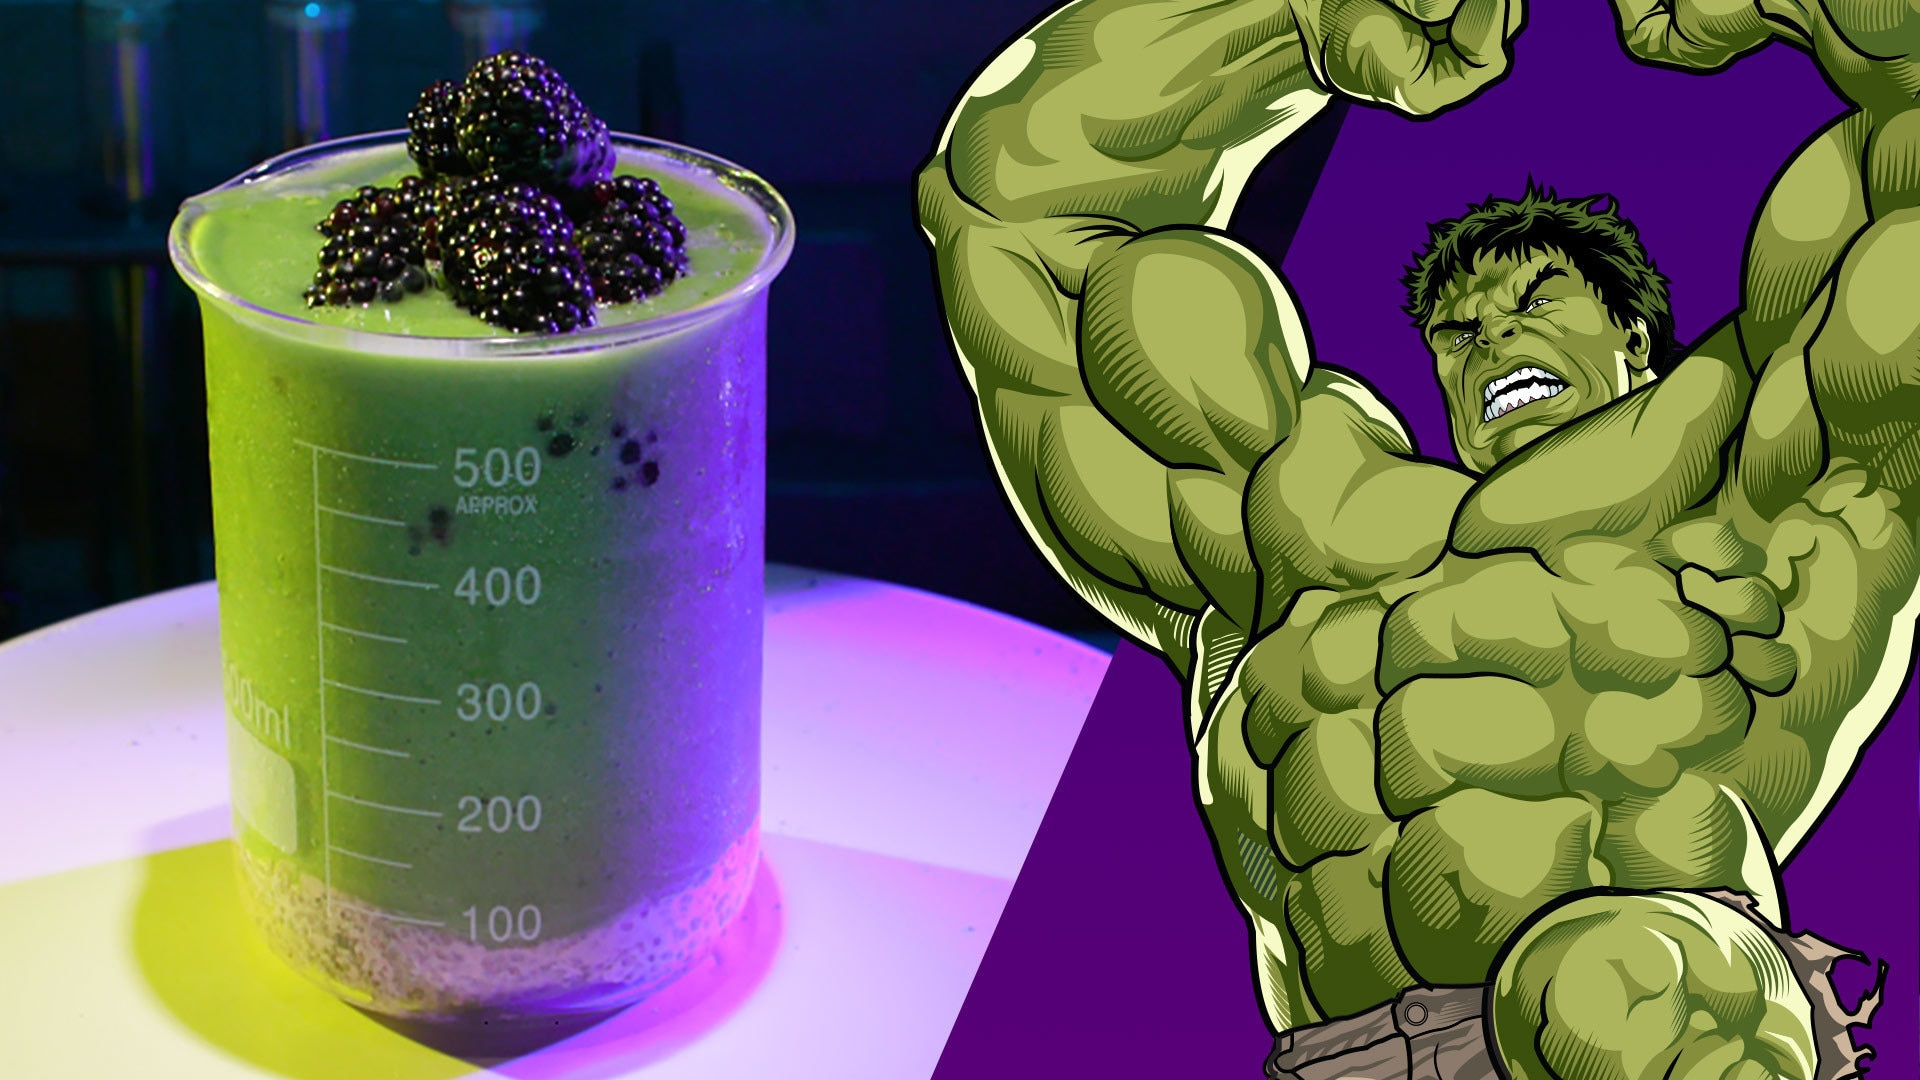 Big Guy Smoothie inspired by the Hulk | Disney Family